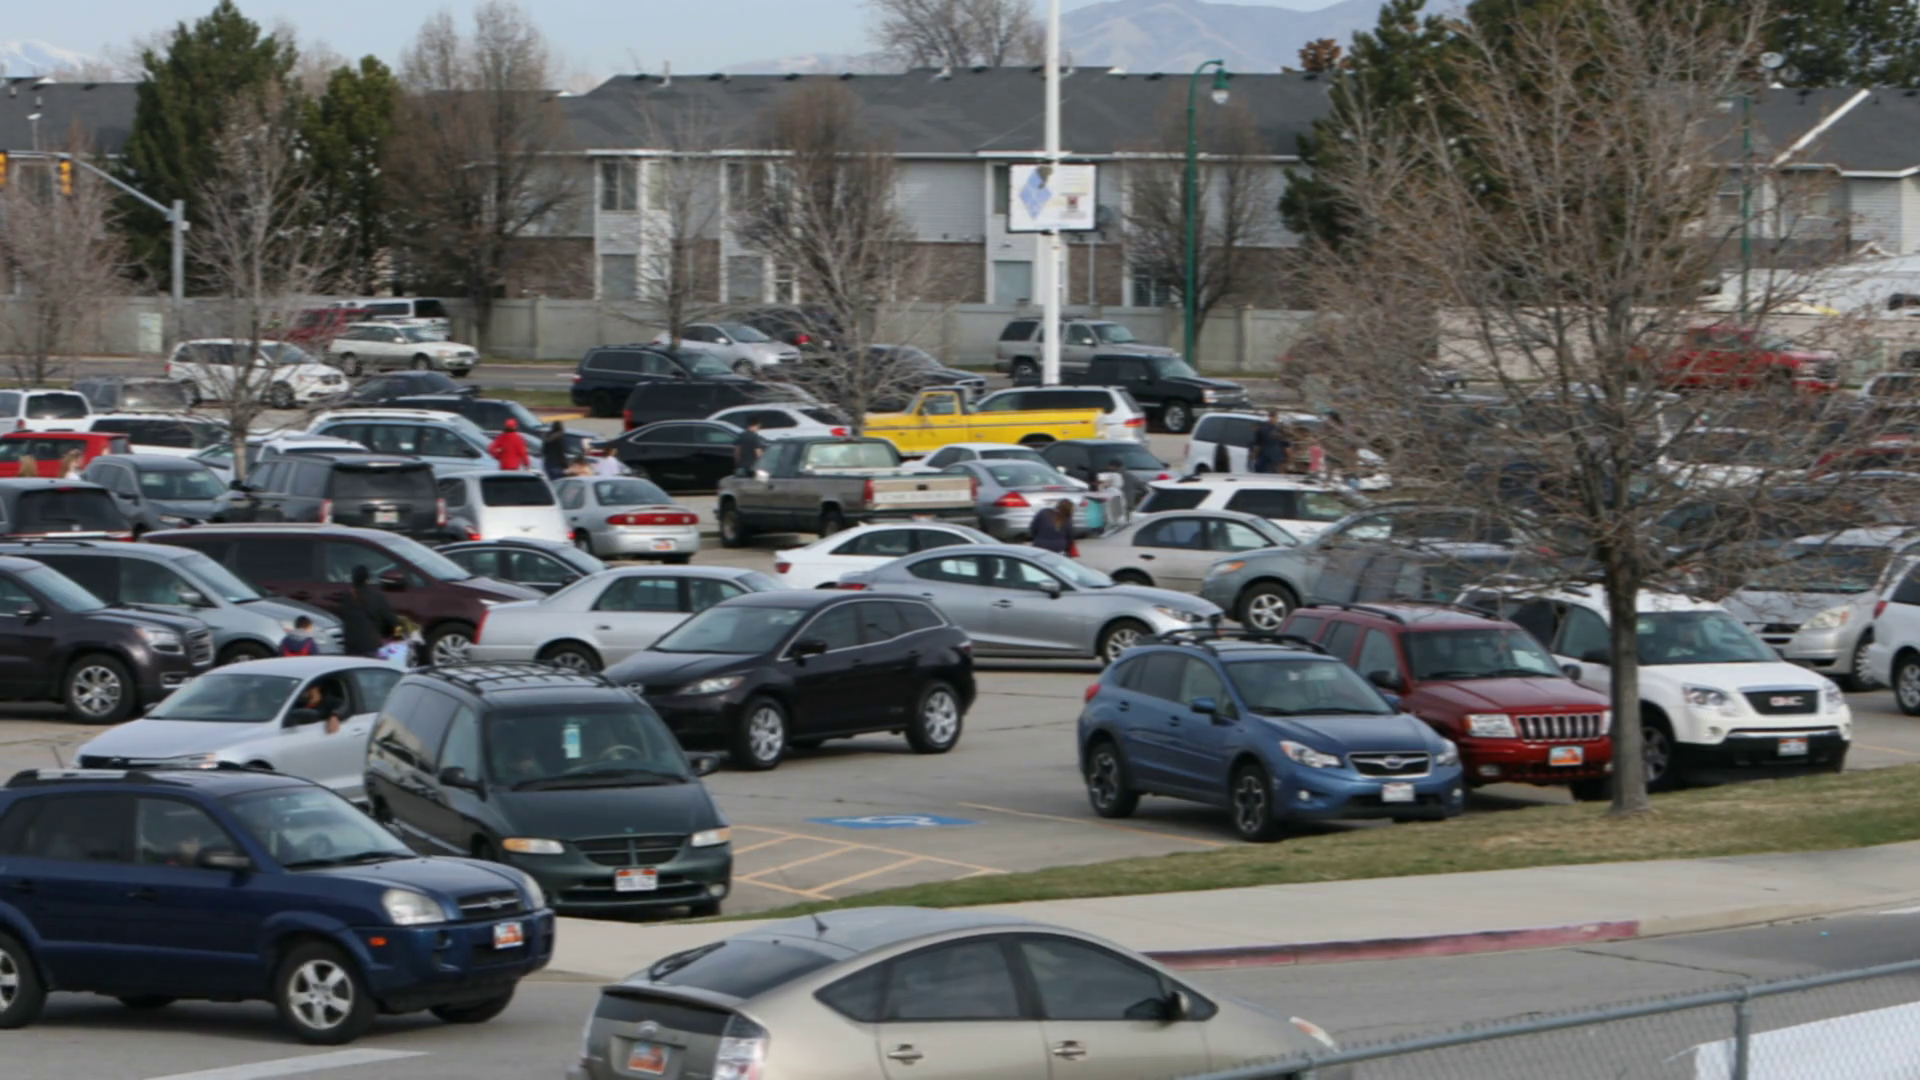 Parking Lot Cars And Pedestrians Blur Hd 5683. High school parking lot  after activity parents and students leaving. Sporting or recreation event. - Parking Lot PNG HD